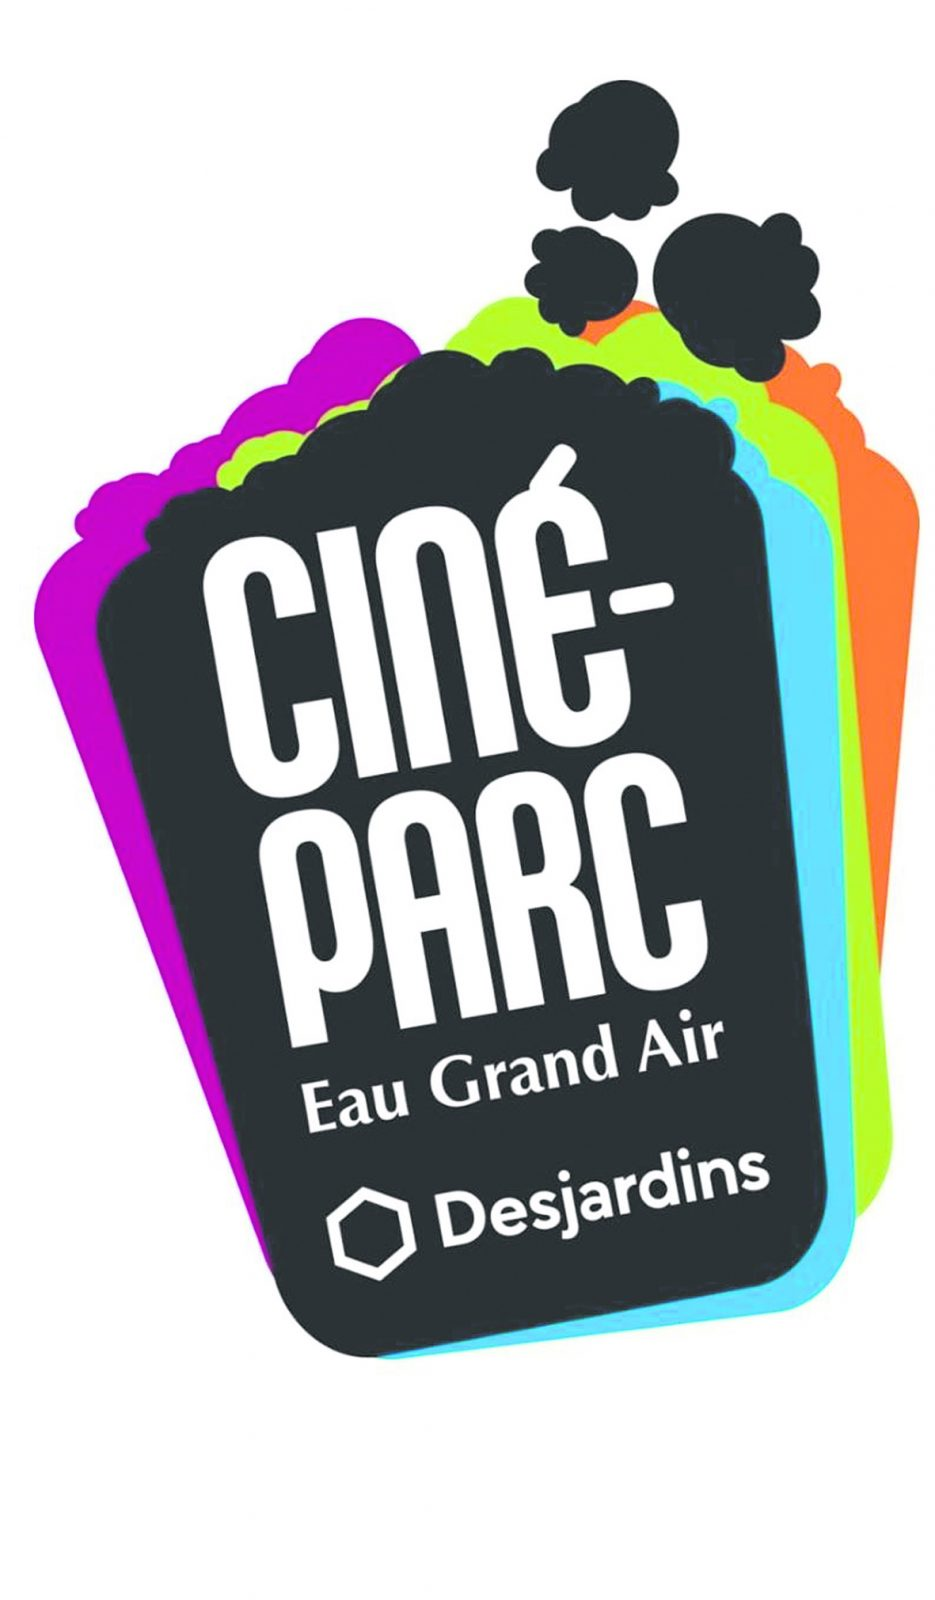 Le Ciné-parc Eau Grand Air bat son plein